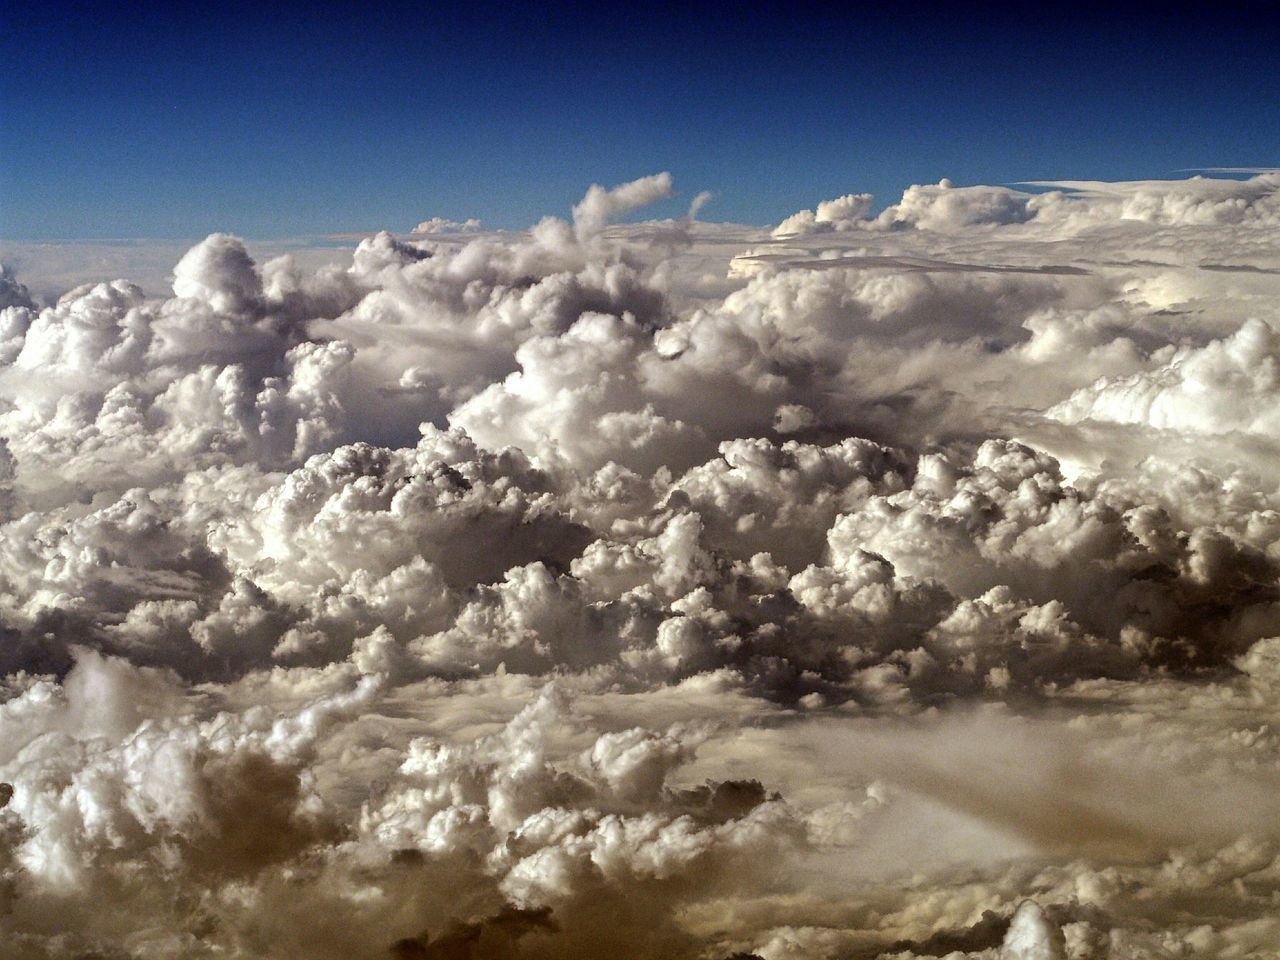 cloudscape, cloud - sky, nature, sky, weather, beauty in nature, sky only, heaven, softness, scenics, outdoors, day, no people, blue, backgrounds, above, space